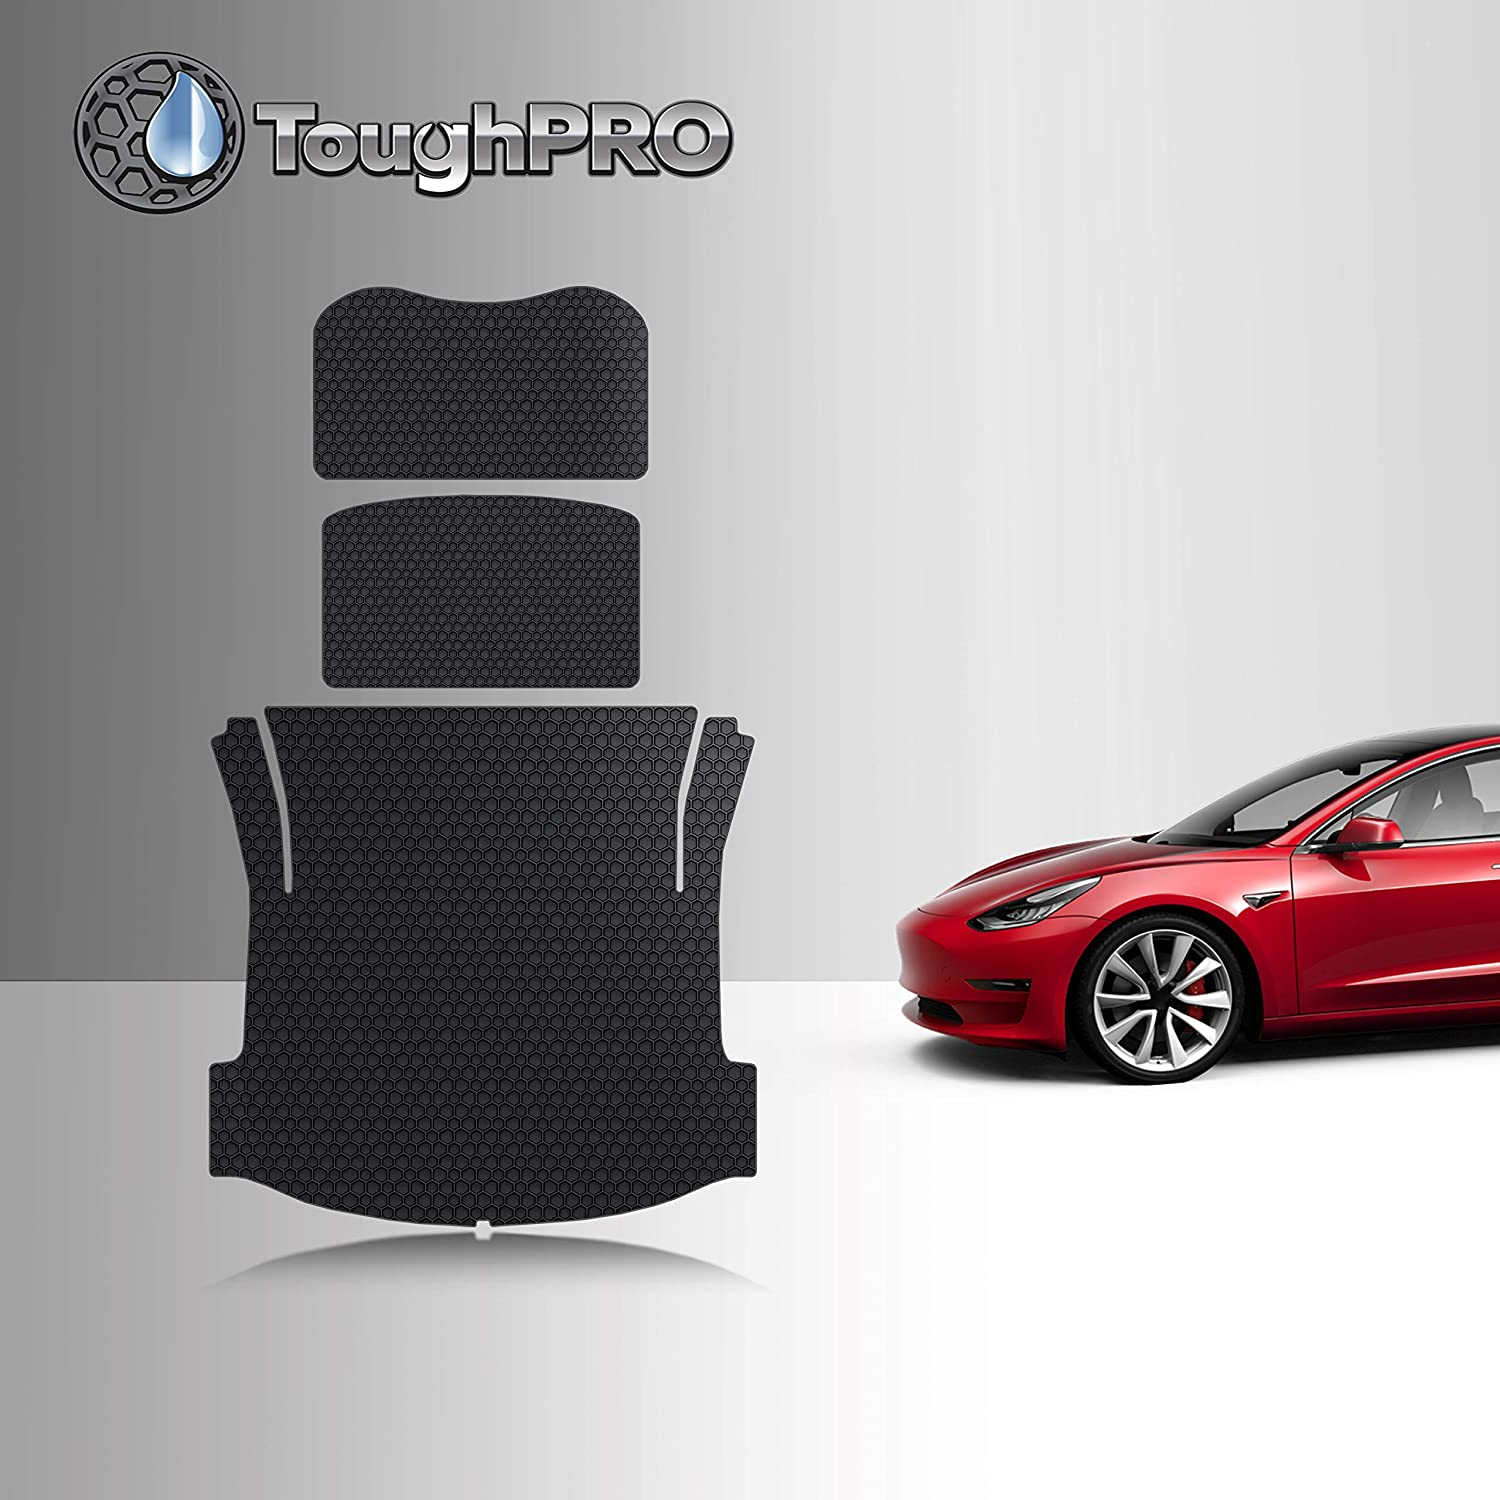 2019 Storage Mat Accessories Made in USA 2020 2018 2017 TOUGHPRO Front Trunk Mat Accessories Heavy Duty - - Black Rubber All Weather Trunk Mat Accessories Compatible with Tesla Model 3